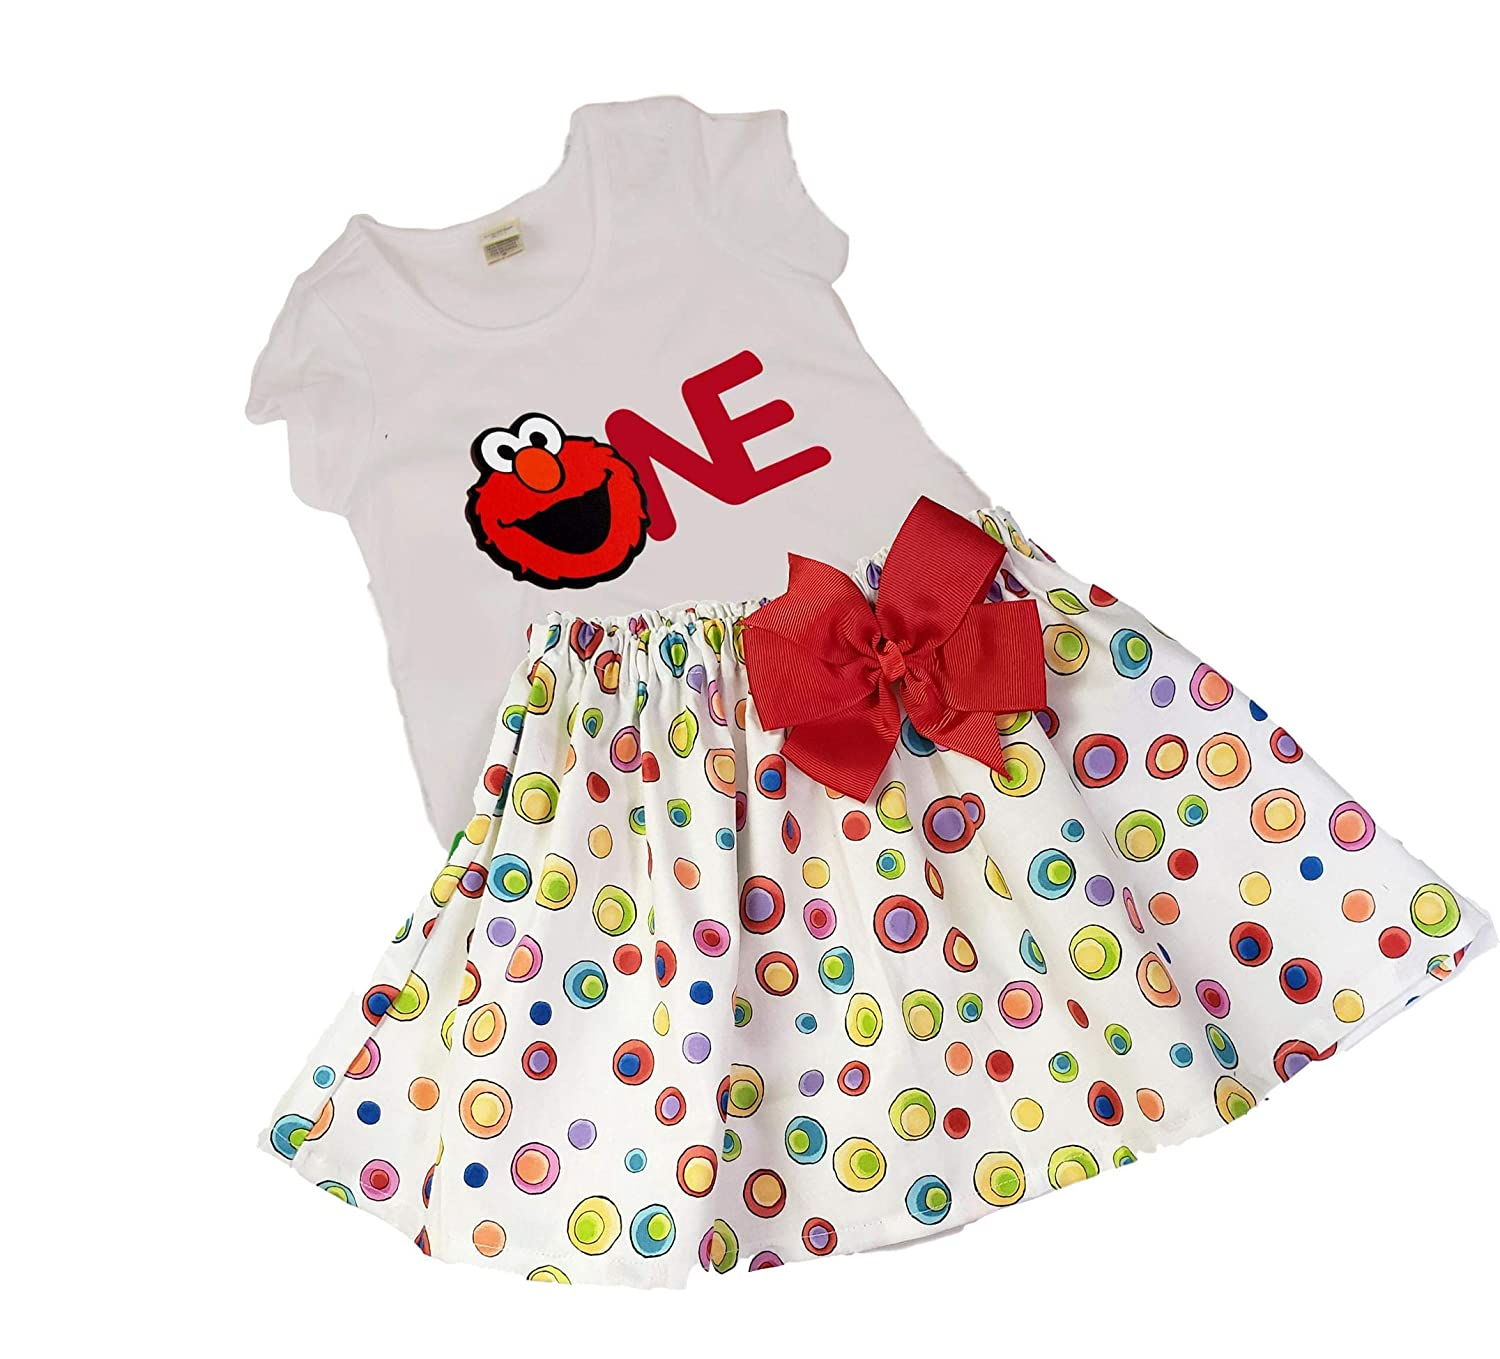 Baby Girls Elmo Skirt Outfit birthday outfit, Toddler Elmo outfit girl Elmo name age girl birthday outfit baby Elmo outfit toddler Elmo name age